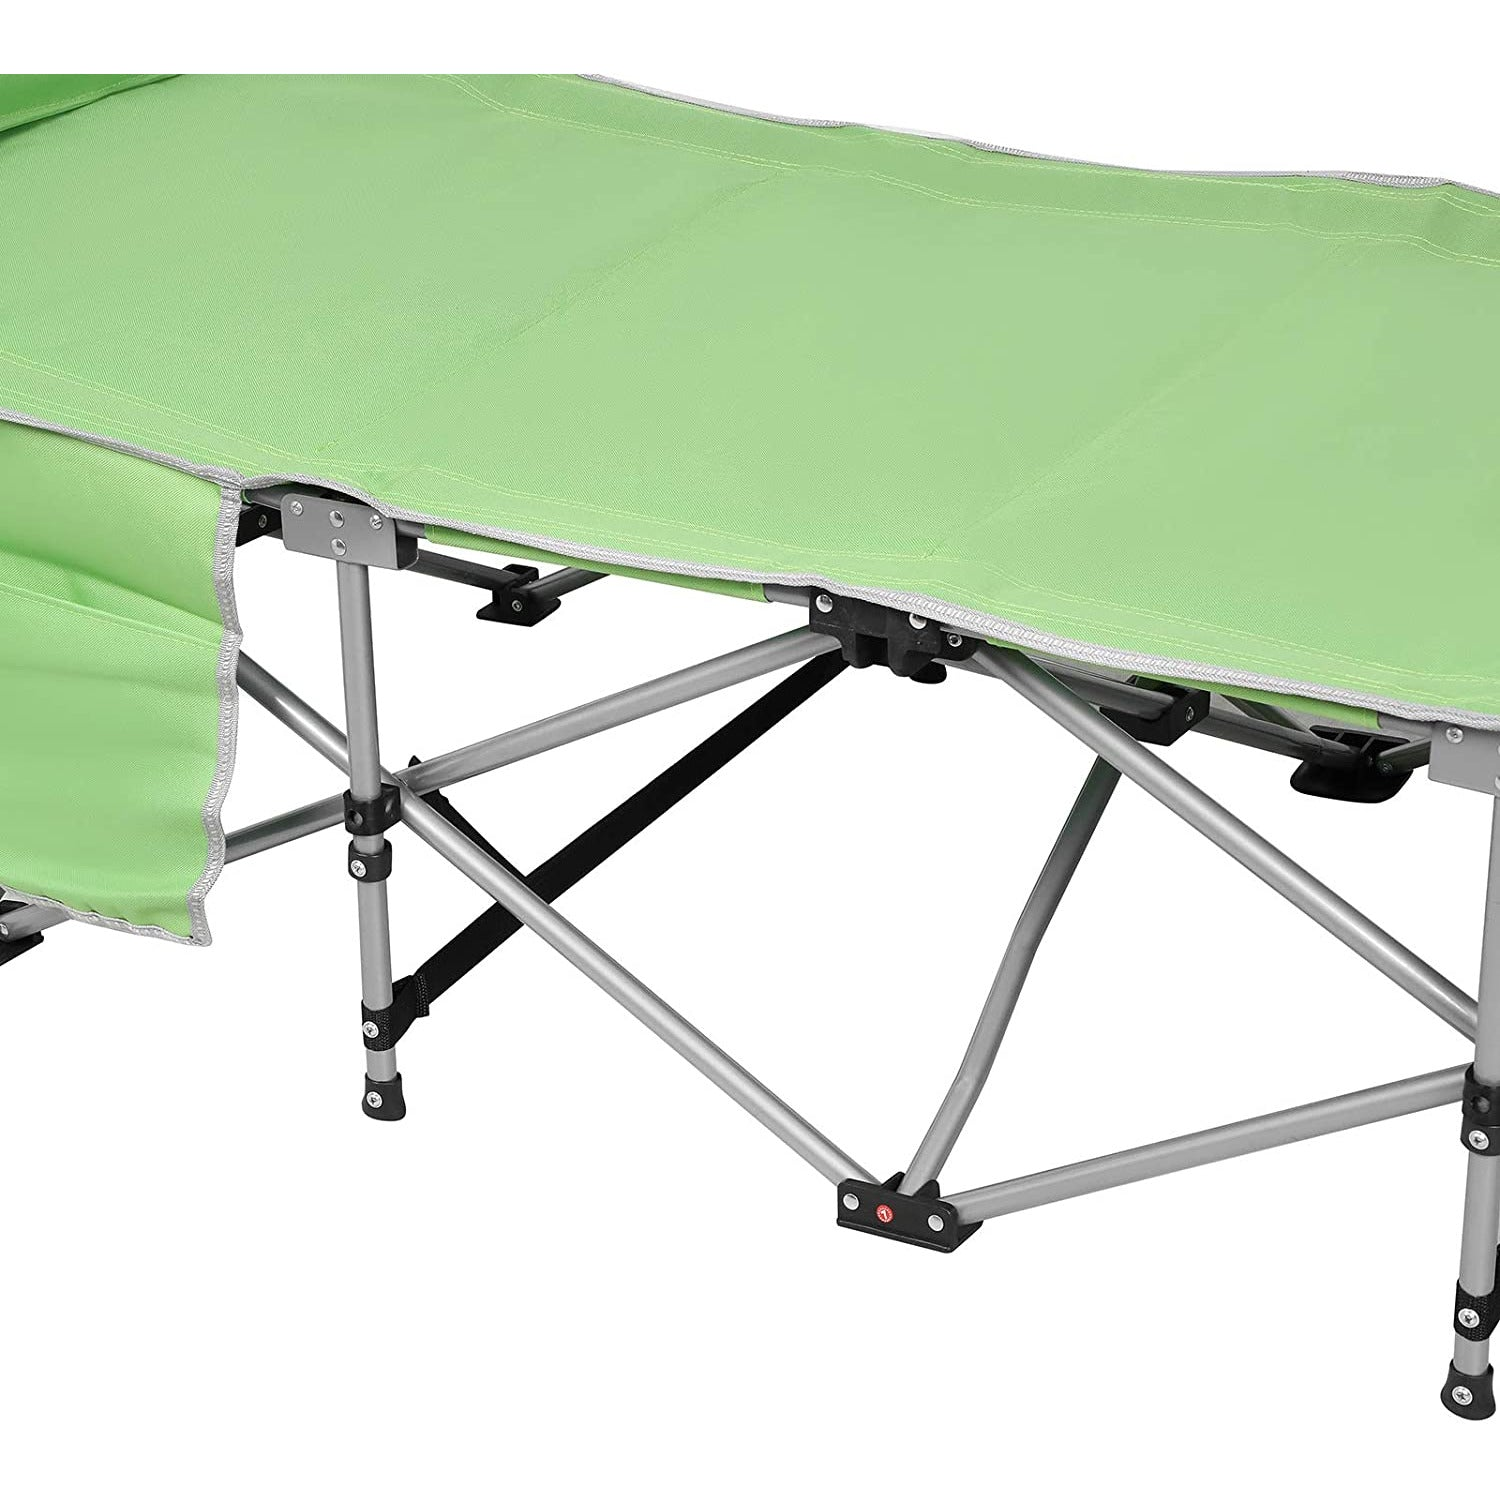 Light Green Folding Sleeping Camping Cot 450 lbs Max, Bed w/Pillow and Side Pocket Portable Design Comfort Small Collapsing Sleeping Bed- Outdoor Traveling Picnic for Adults